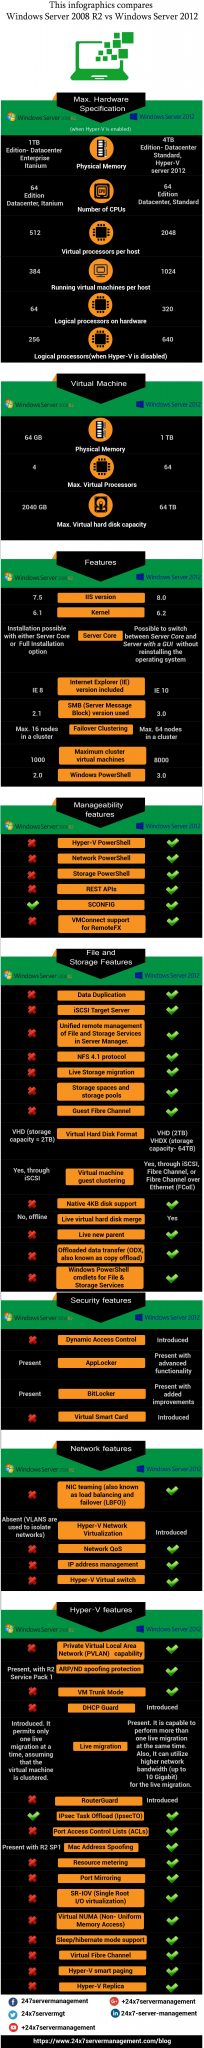 windows server 2008r2 vs 2012